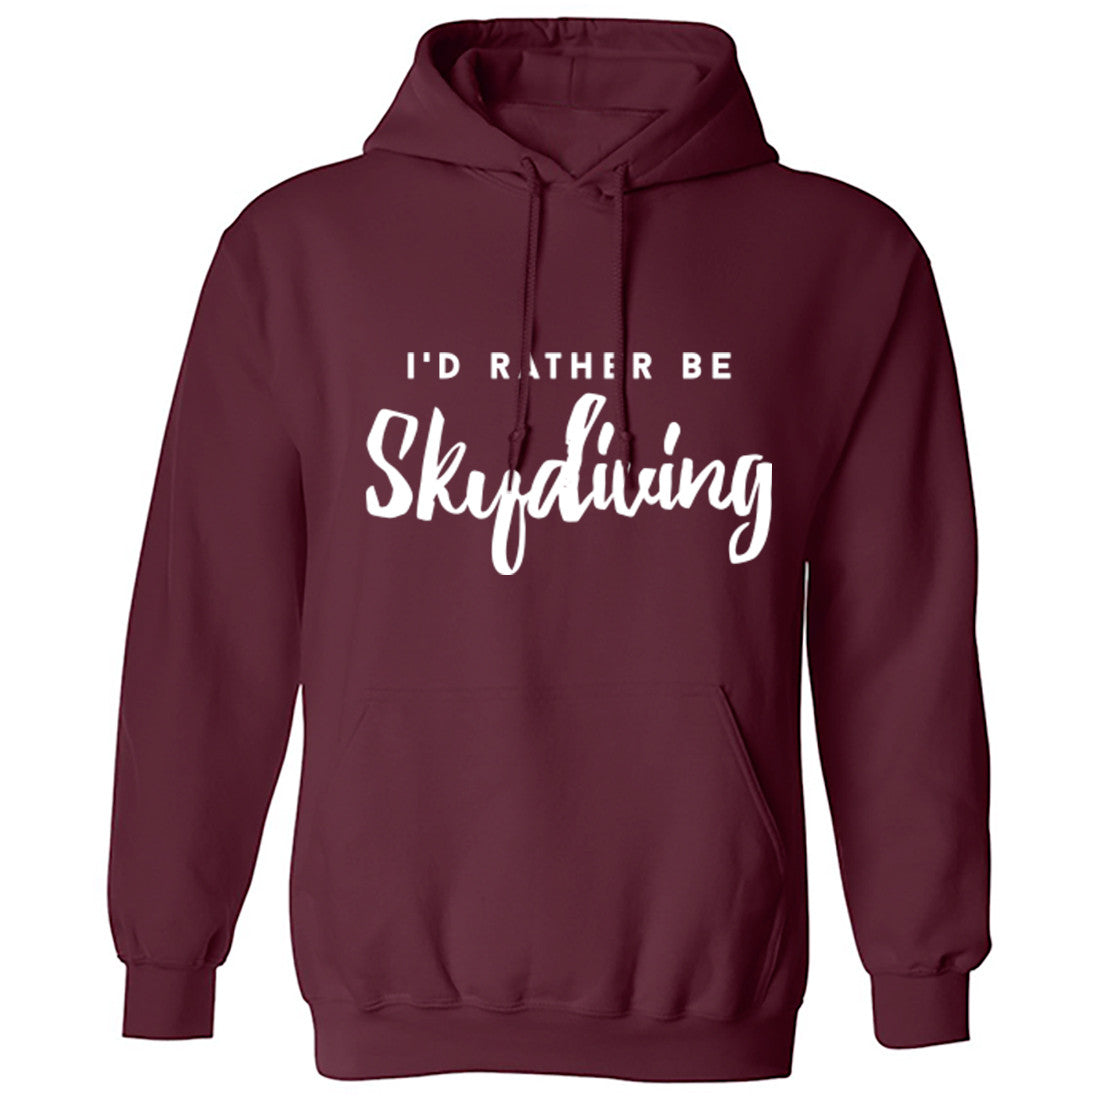 I'd Rather Be Skydiving Unisex Hoodie K0206 - Illustrated Identity Ltd.